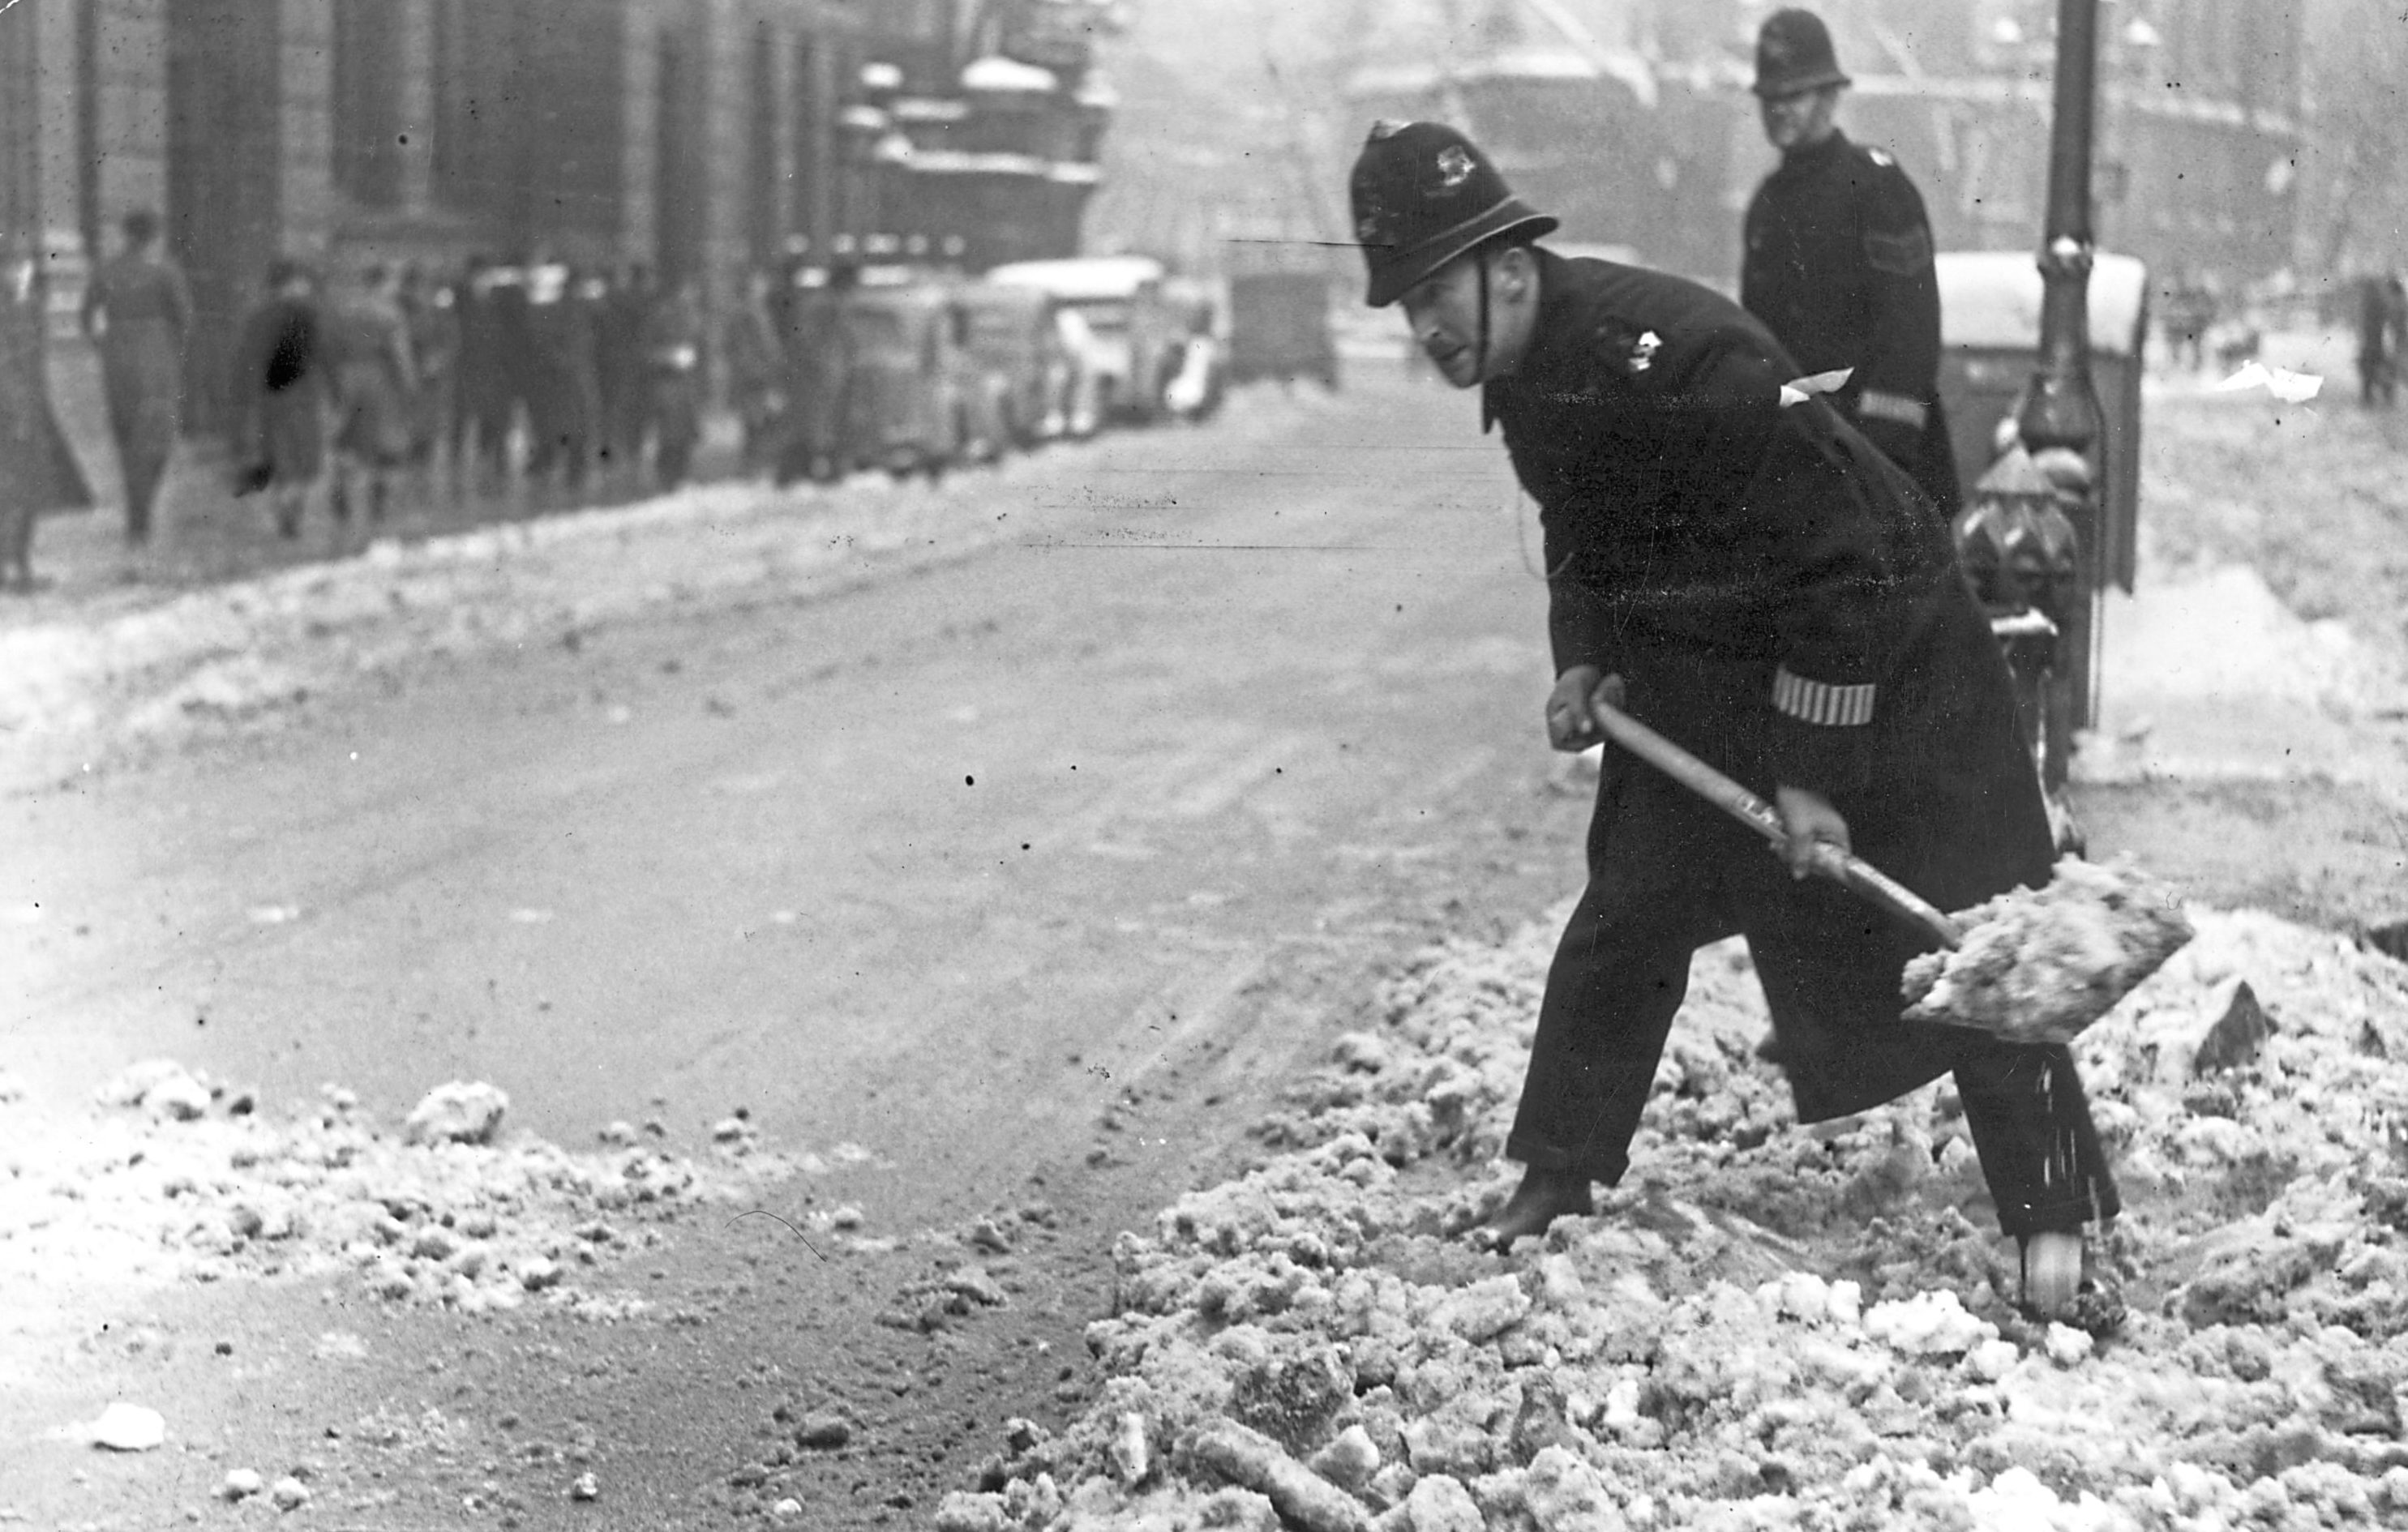 10th March 1947:  A London policeman clears away some heavy snowfall  (Monty Fresco/Topical Press Agency/Getty Images)